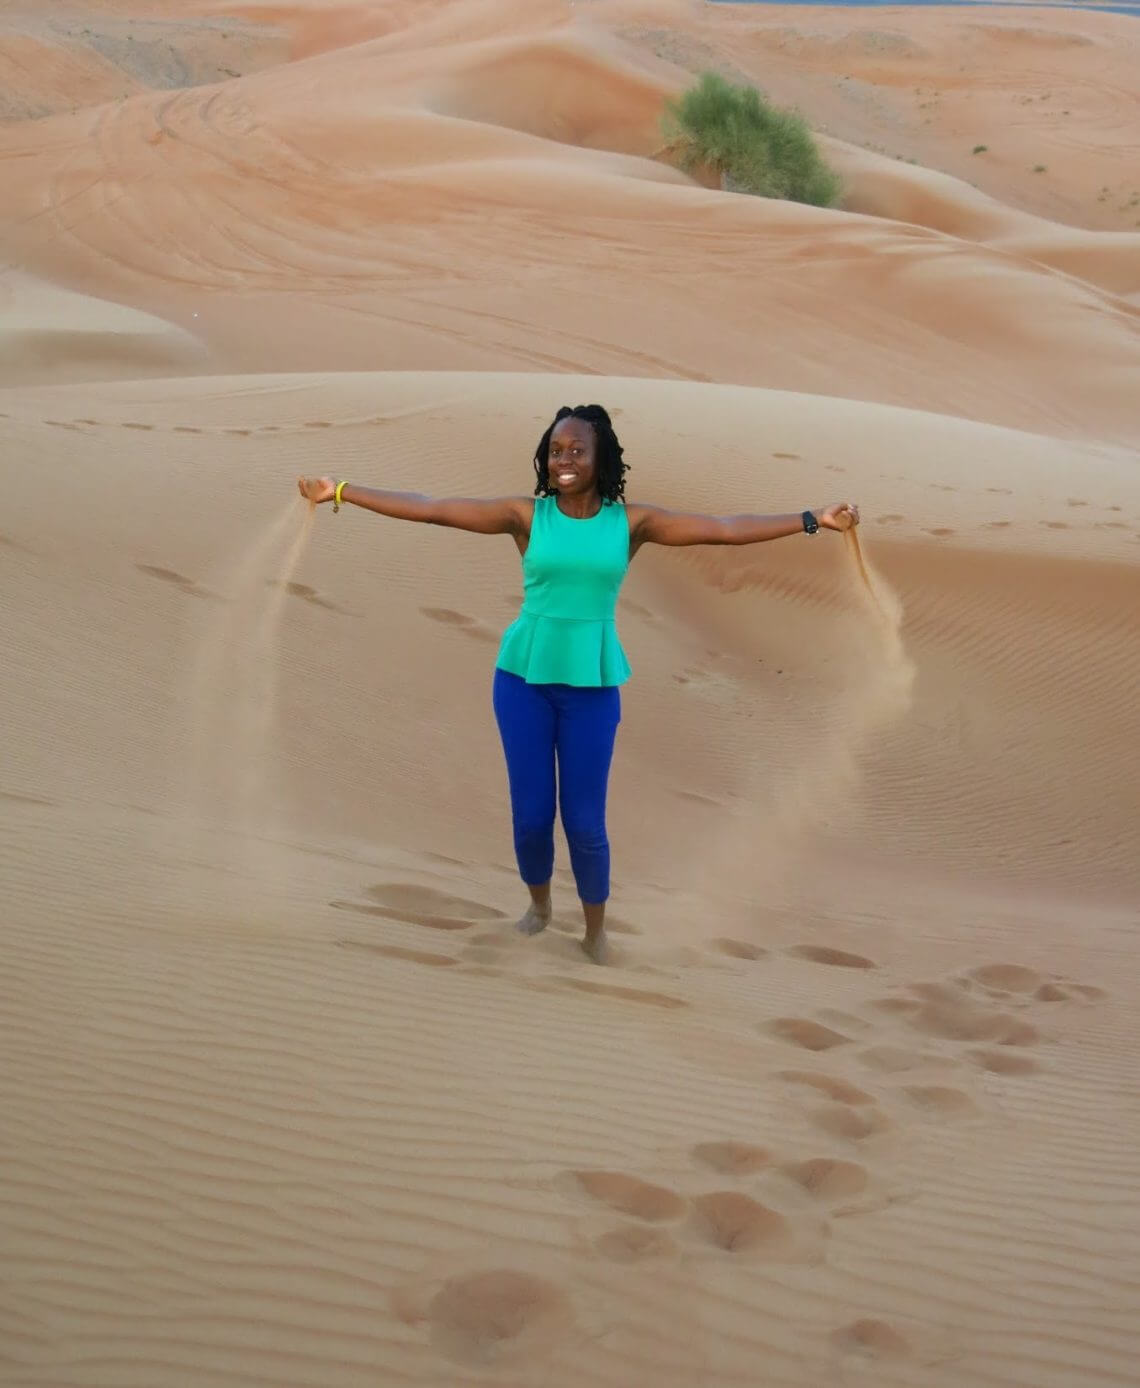 Sand Dunes in Dubai, UAE